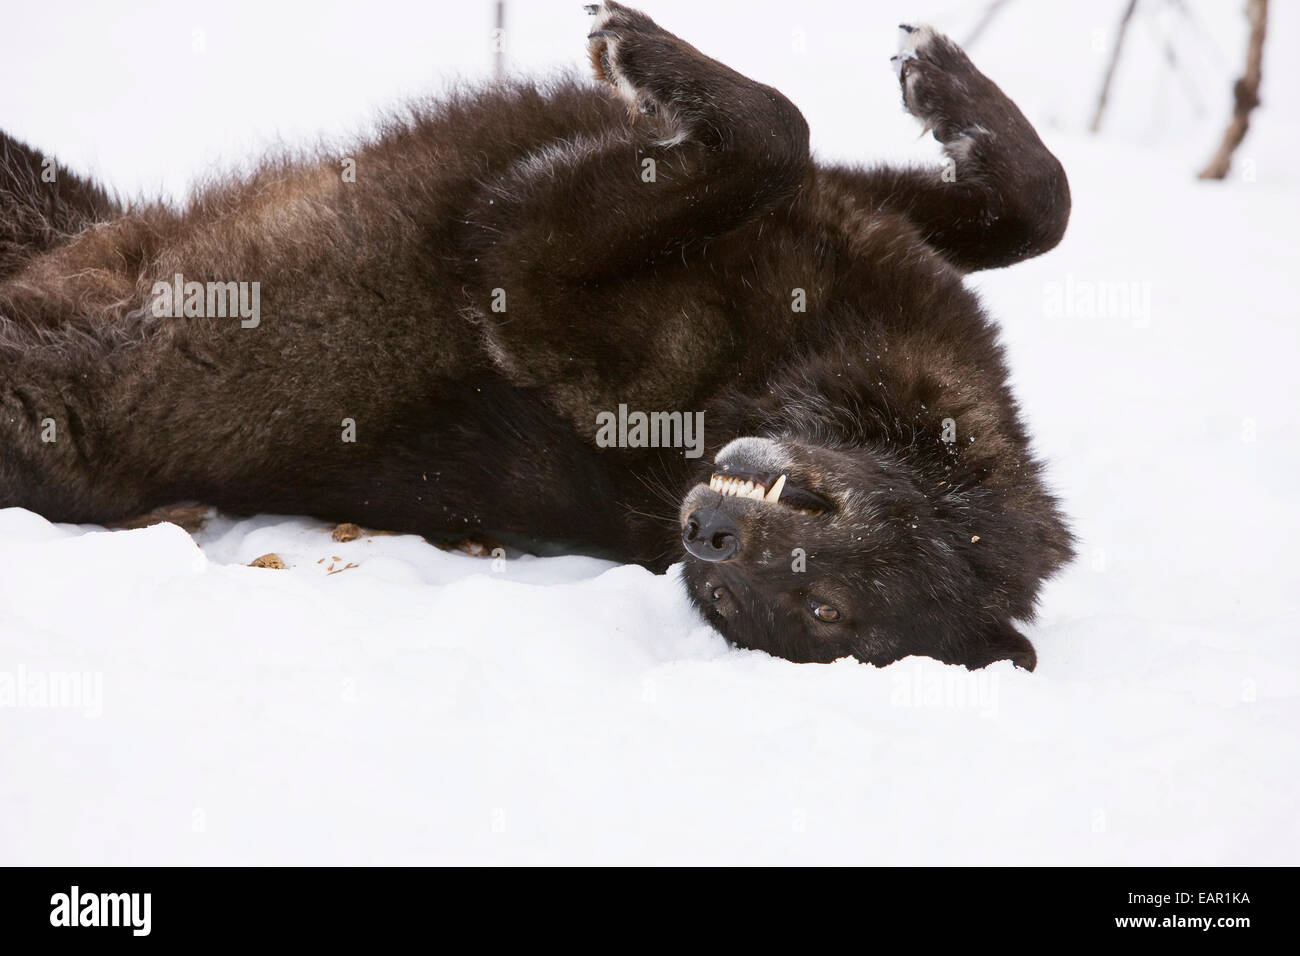 Wolf Rolling Ground Stock Photos & Wolf Rolling Ground ...